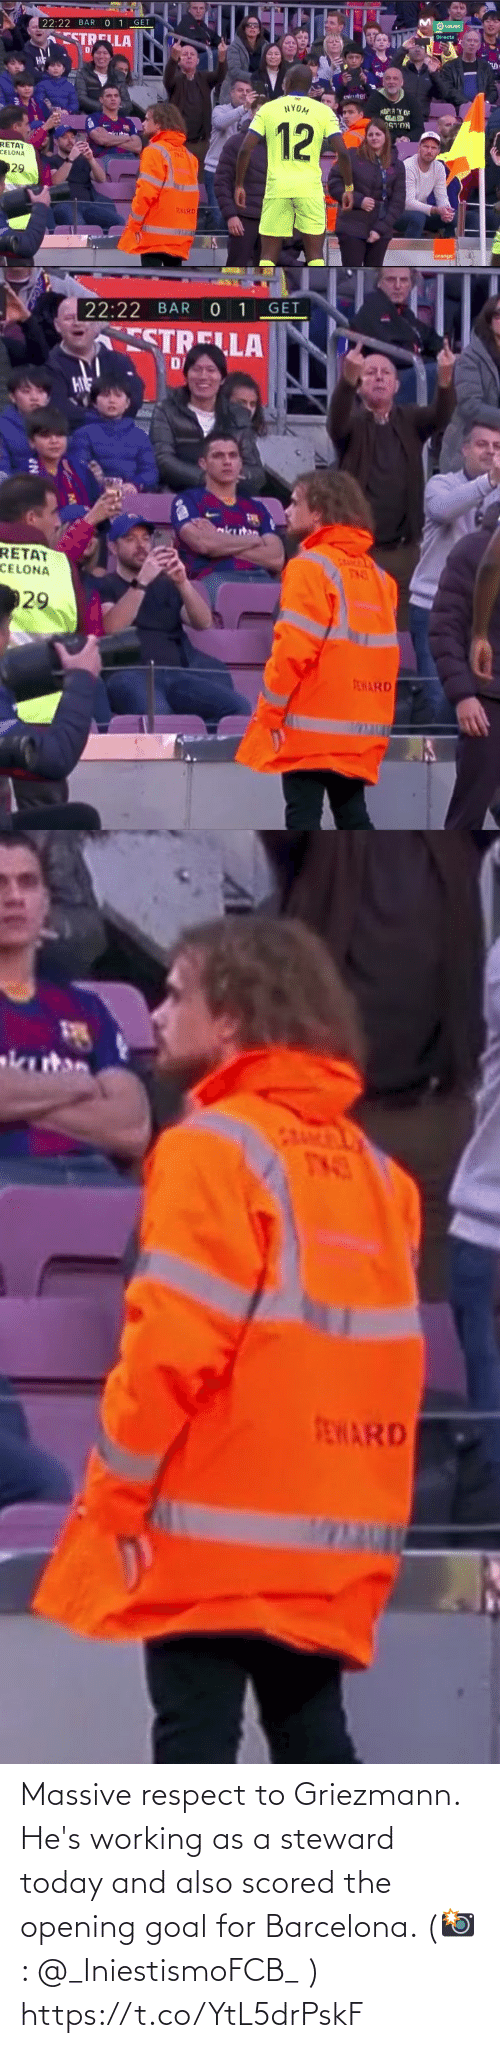 Barcelona: Massive respect to Griezmann. He's working as a steward today and also scored the opening goal for Barcelona.   (📸: @_IniestismoFCB_ ) https://t.co/YtL5drPskF